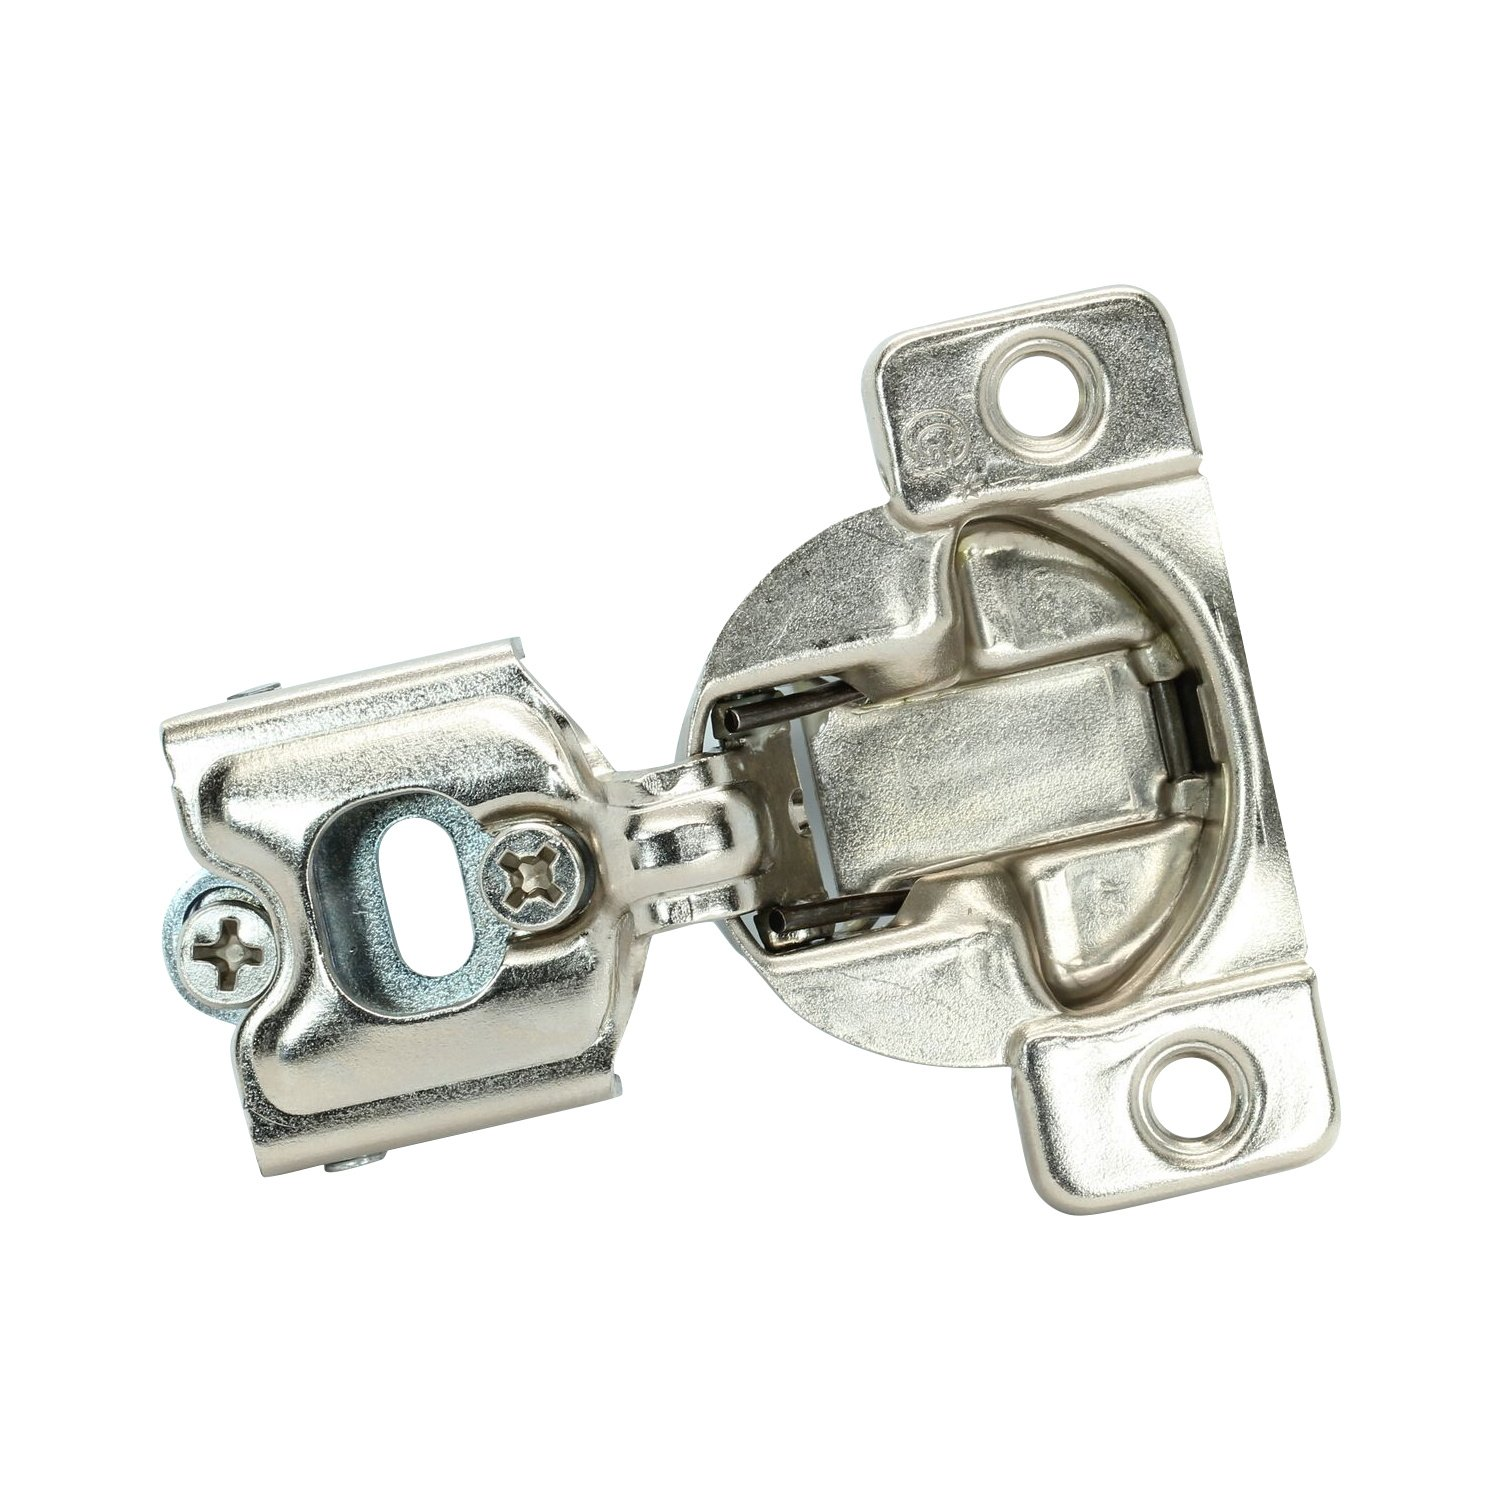 25 Pack Rok Hardware Grass TEC 864 108 Degree 1/4'' Overlay Self Close Screw On Compact Cabinet Hinge 04396-15 3-Way Adjustment